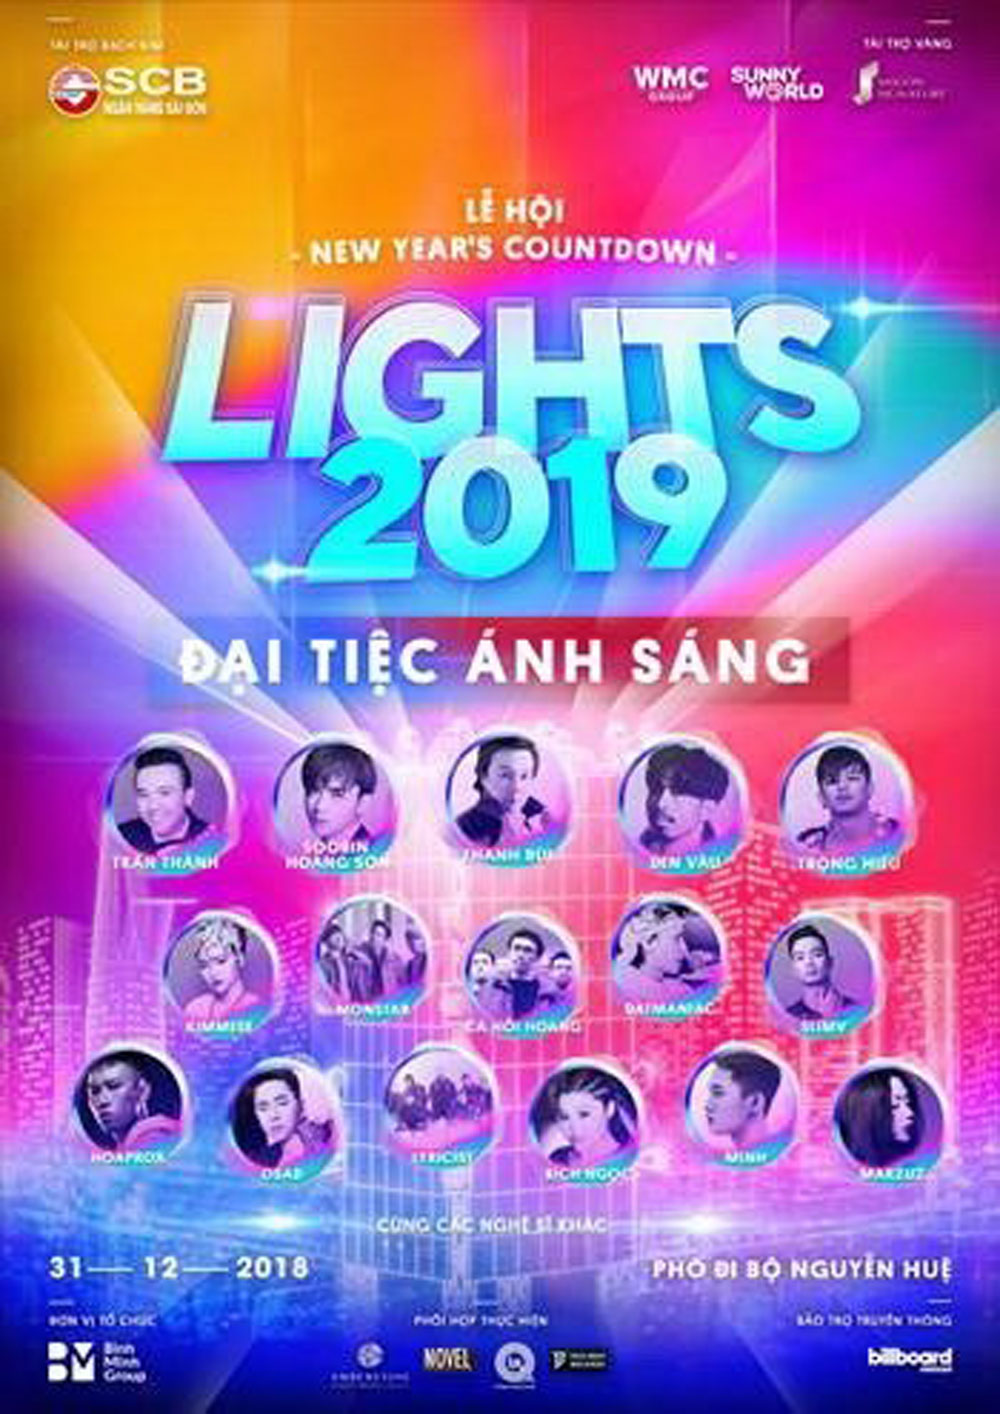 New Year Countdown party, Nguyen Hue walking street, Vietnamese talents, cultural event, Lights 2019